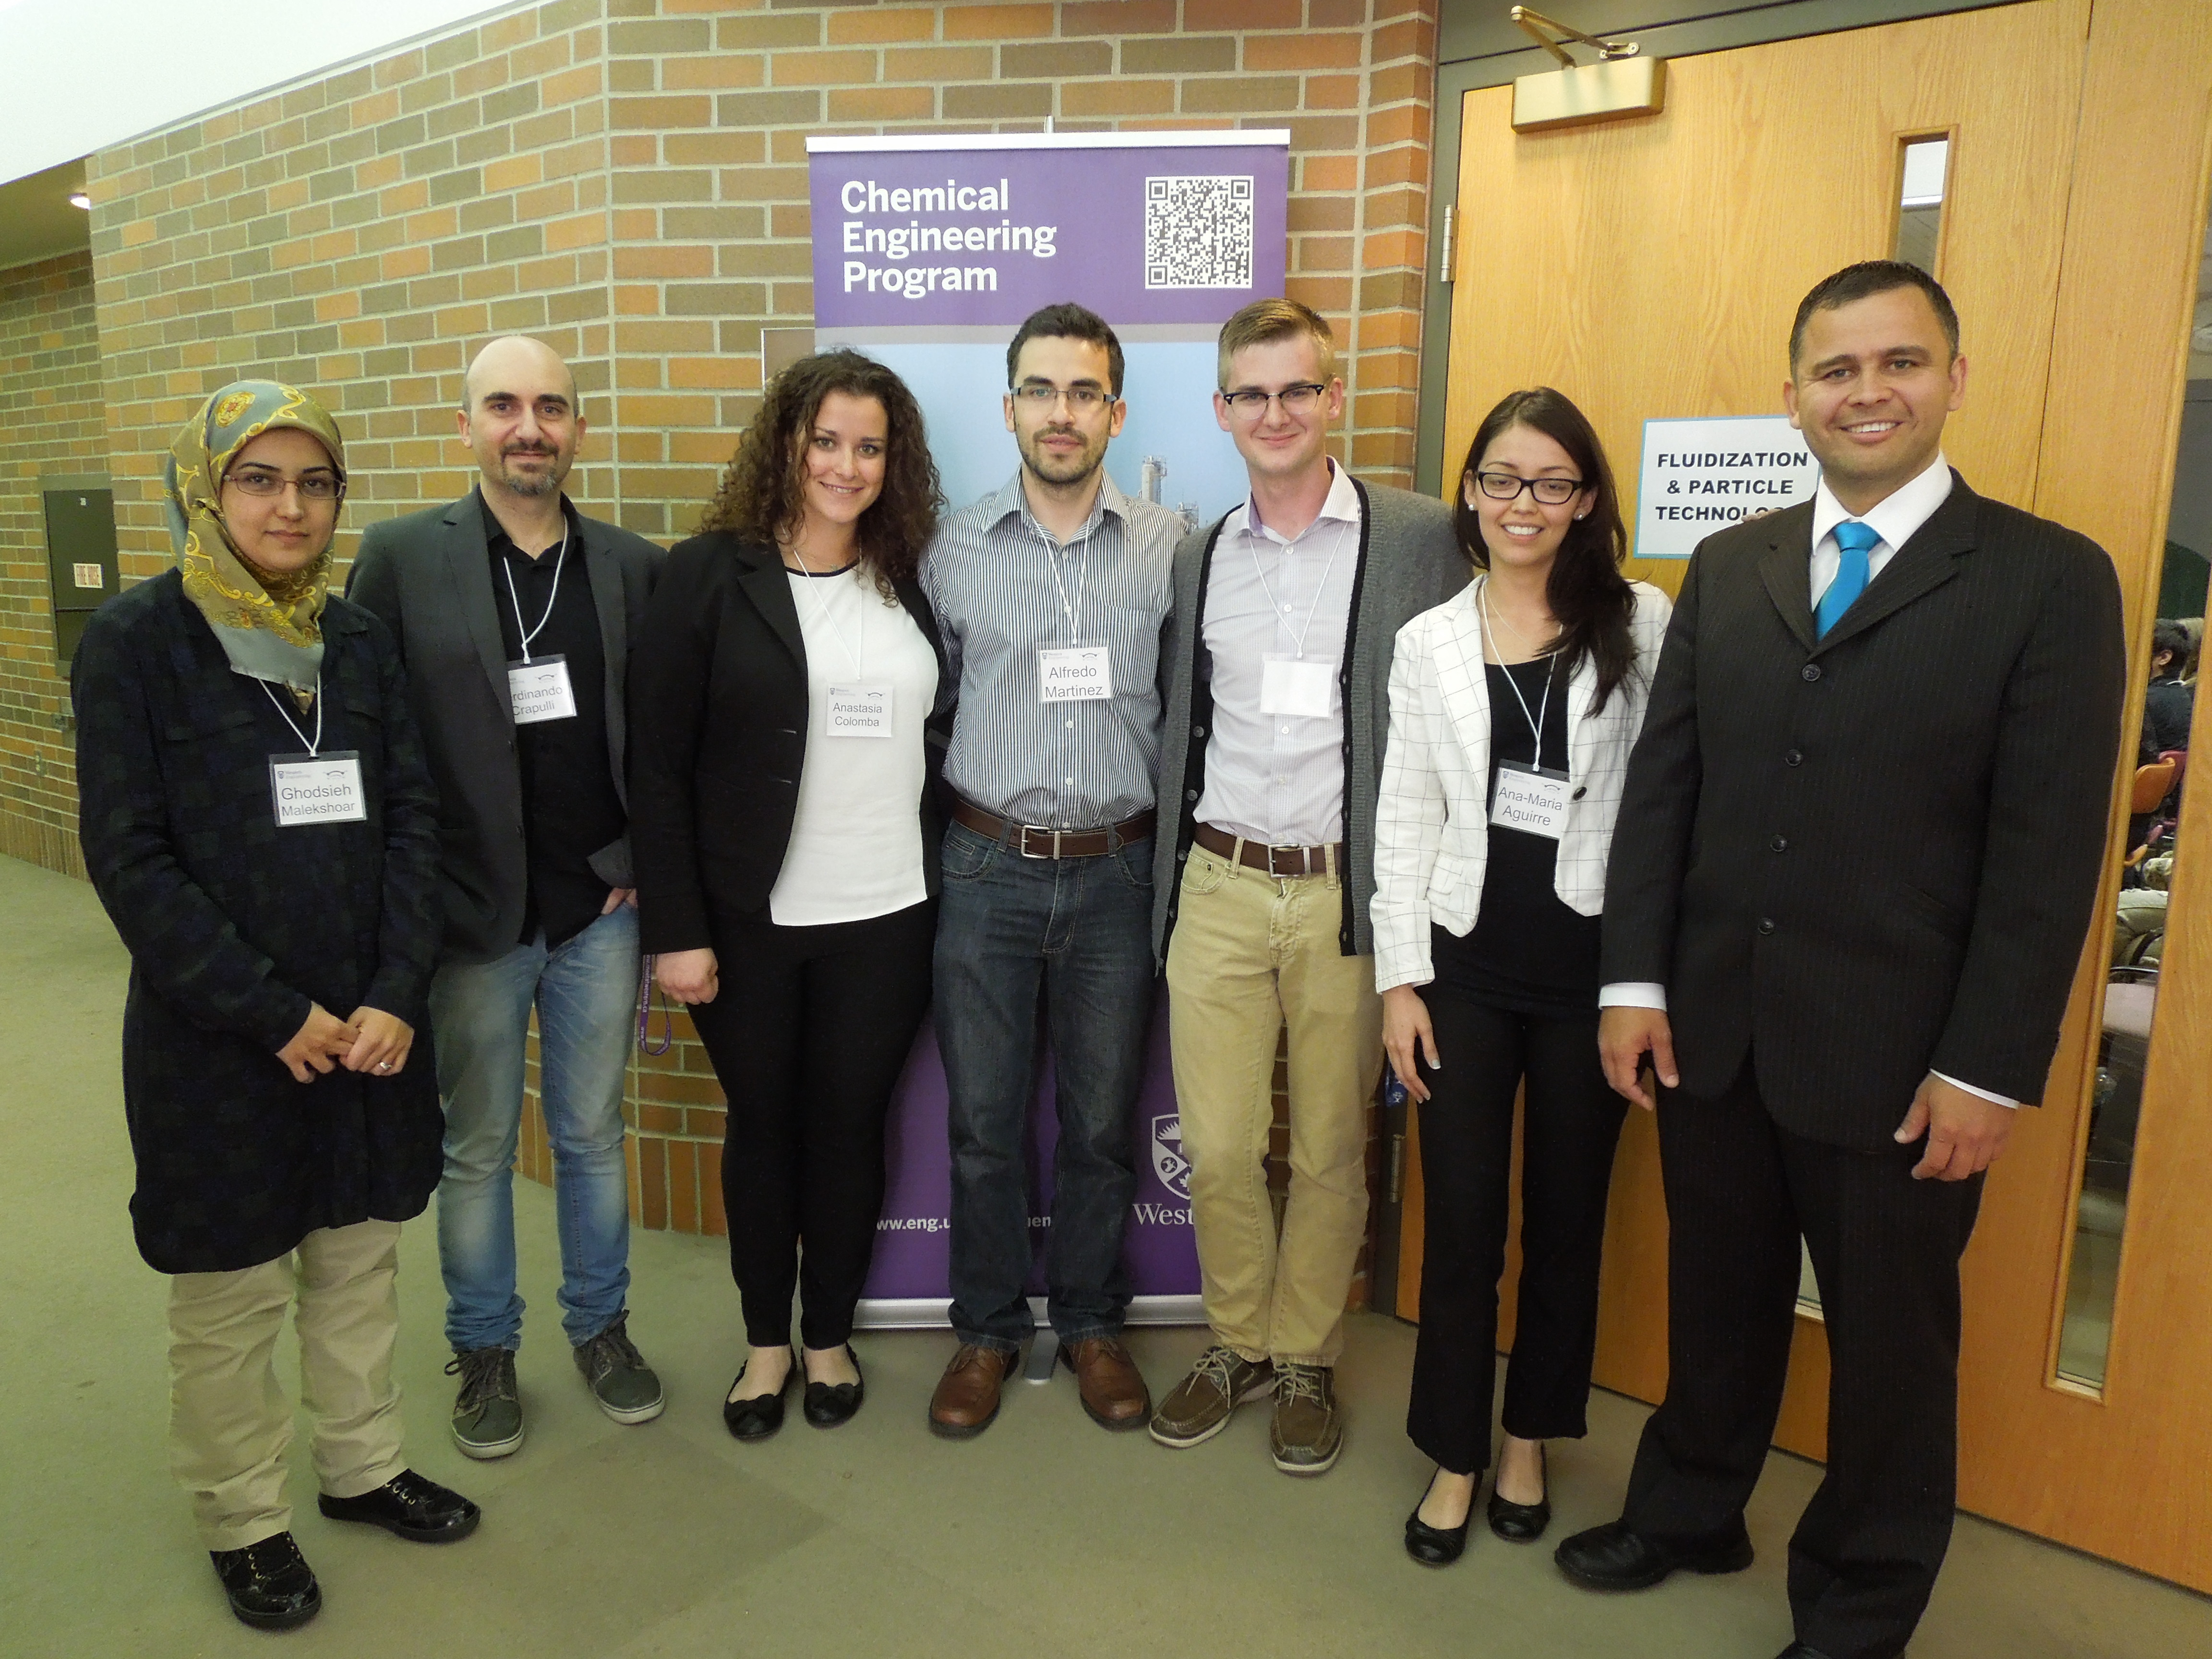 Award Winners in 5th Annual Research Bridges Event June 6, 2014 (submitted photo)